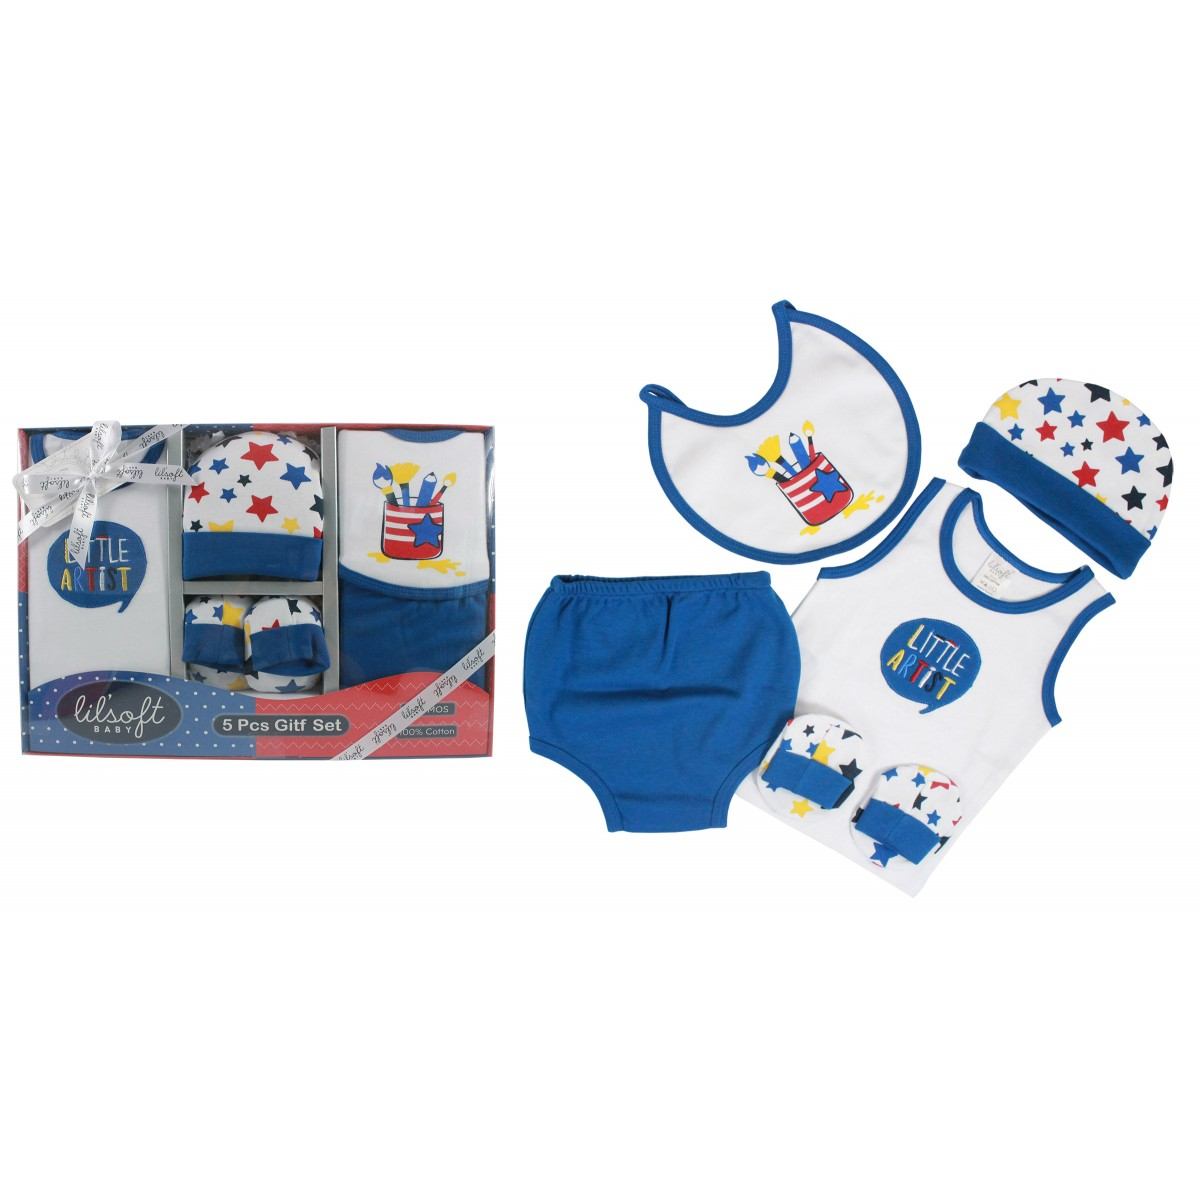 Baby Gift Set Flipkart : Baby tank top pieces gift set for sets